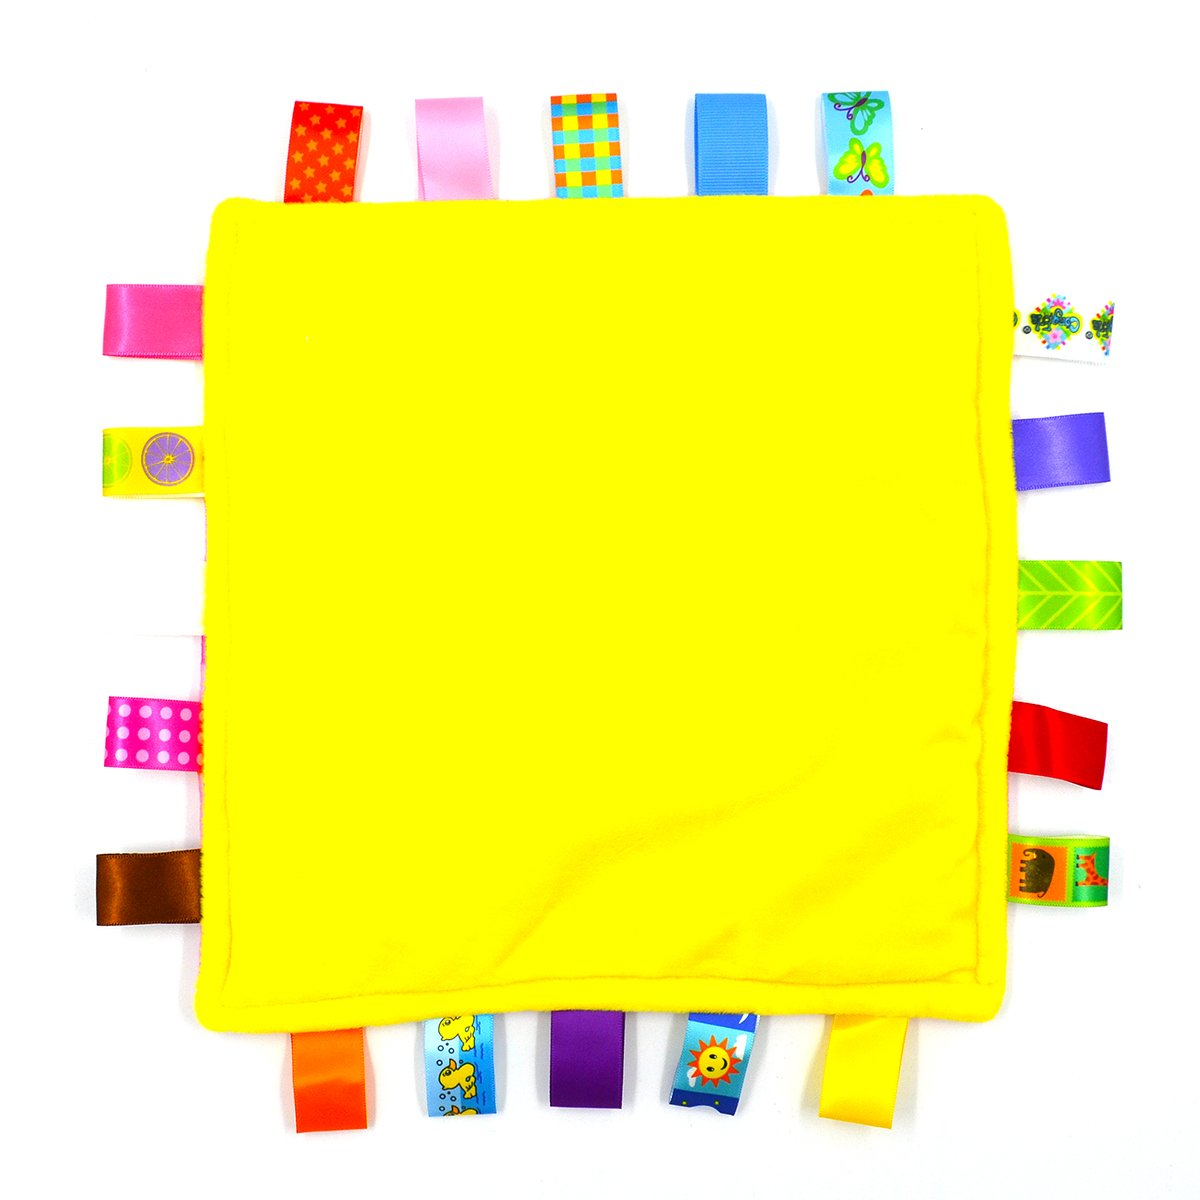 Small Flowers Breathable Infant Taggy Blanket Soft Touch Plush Taggy Toys Comfortable Security Taggie Present for Bedtime Newborn Baby